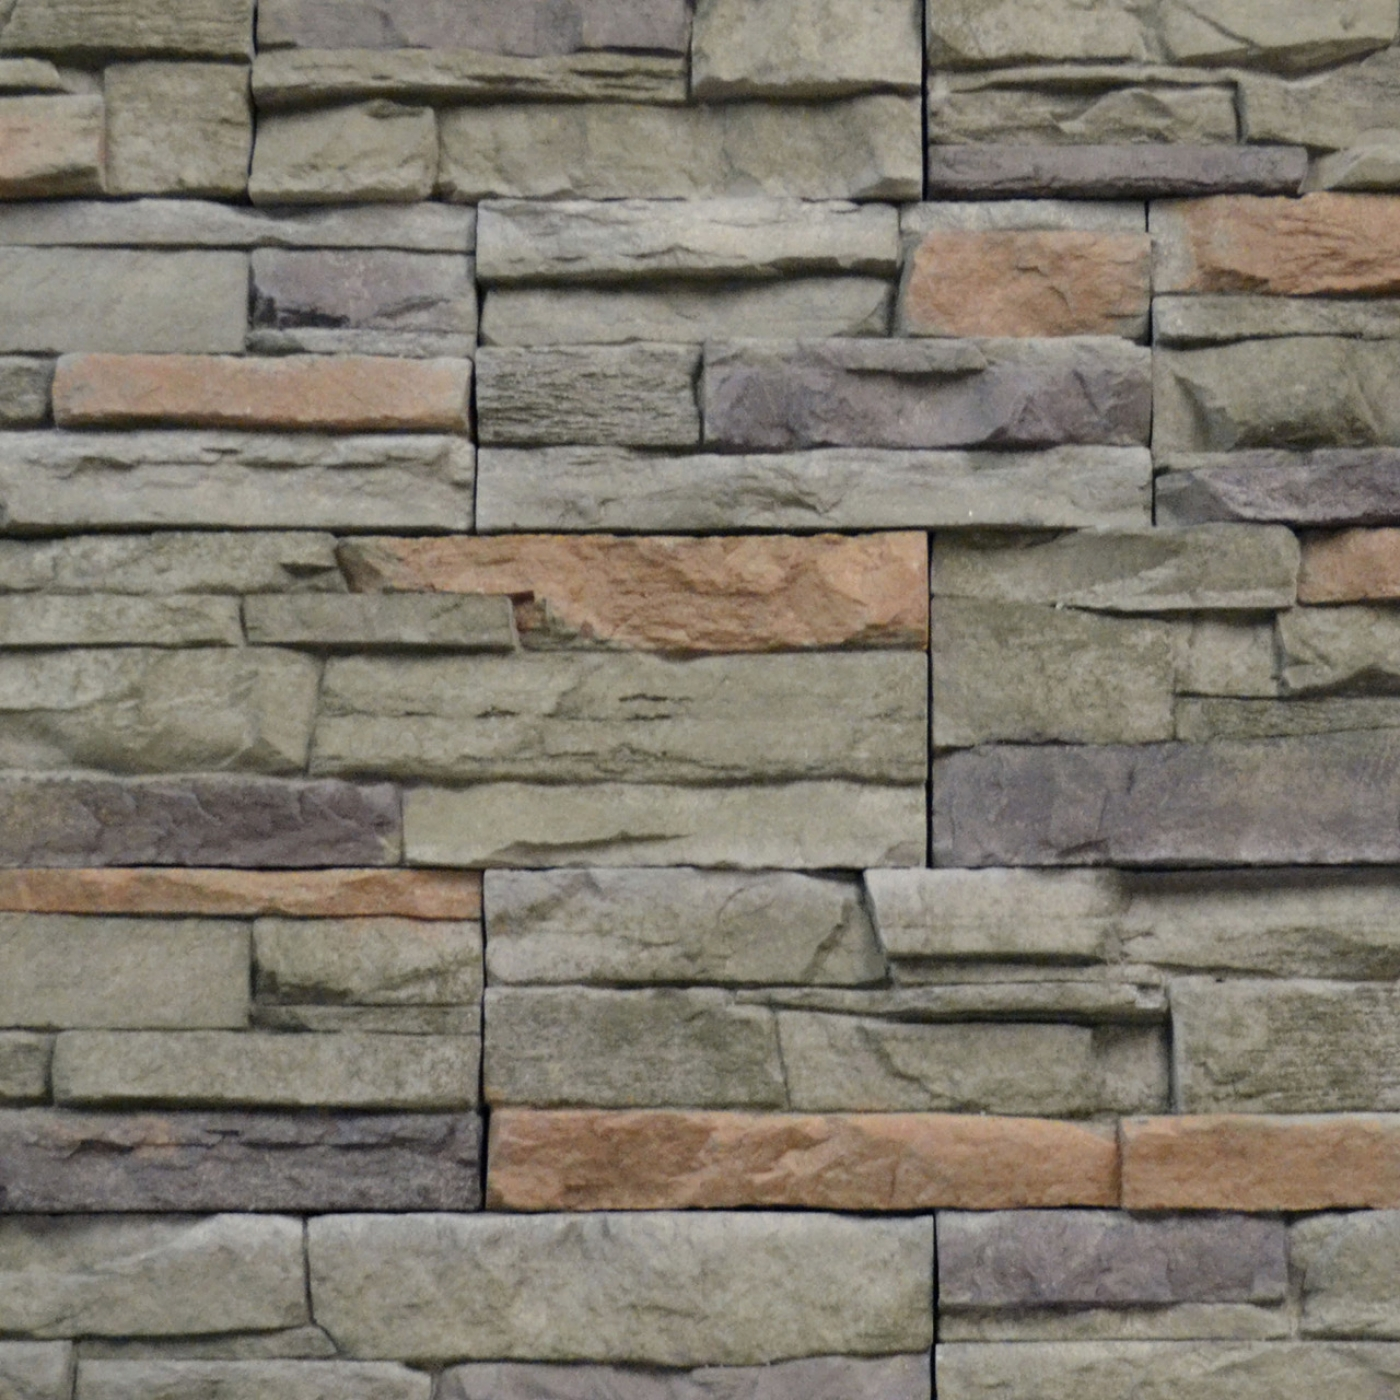 San Francisco Stepp Stone Stone Veneer from Environmental StoneWorks